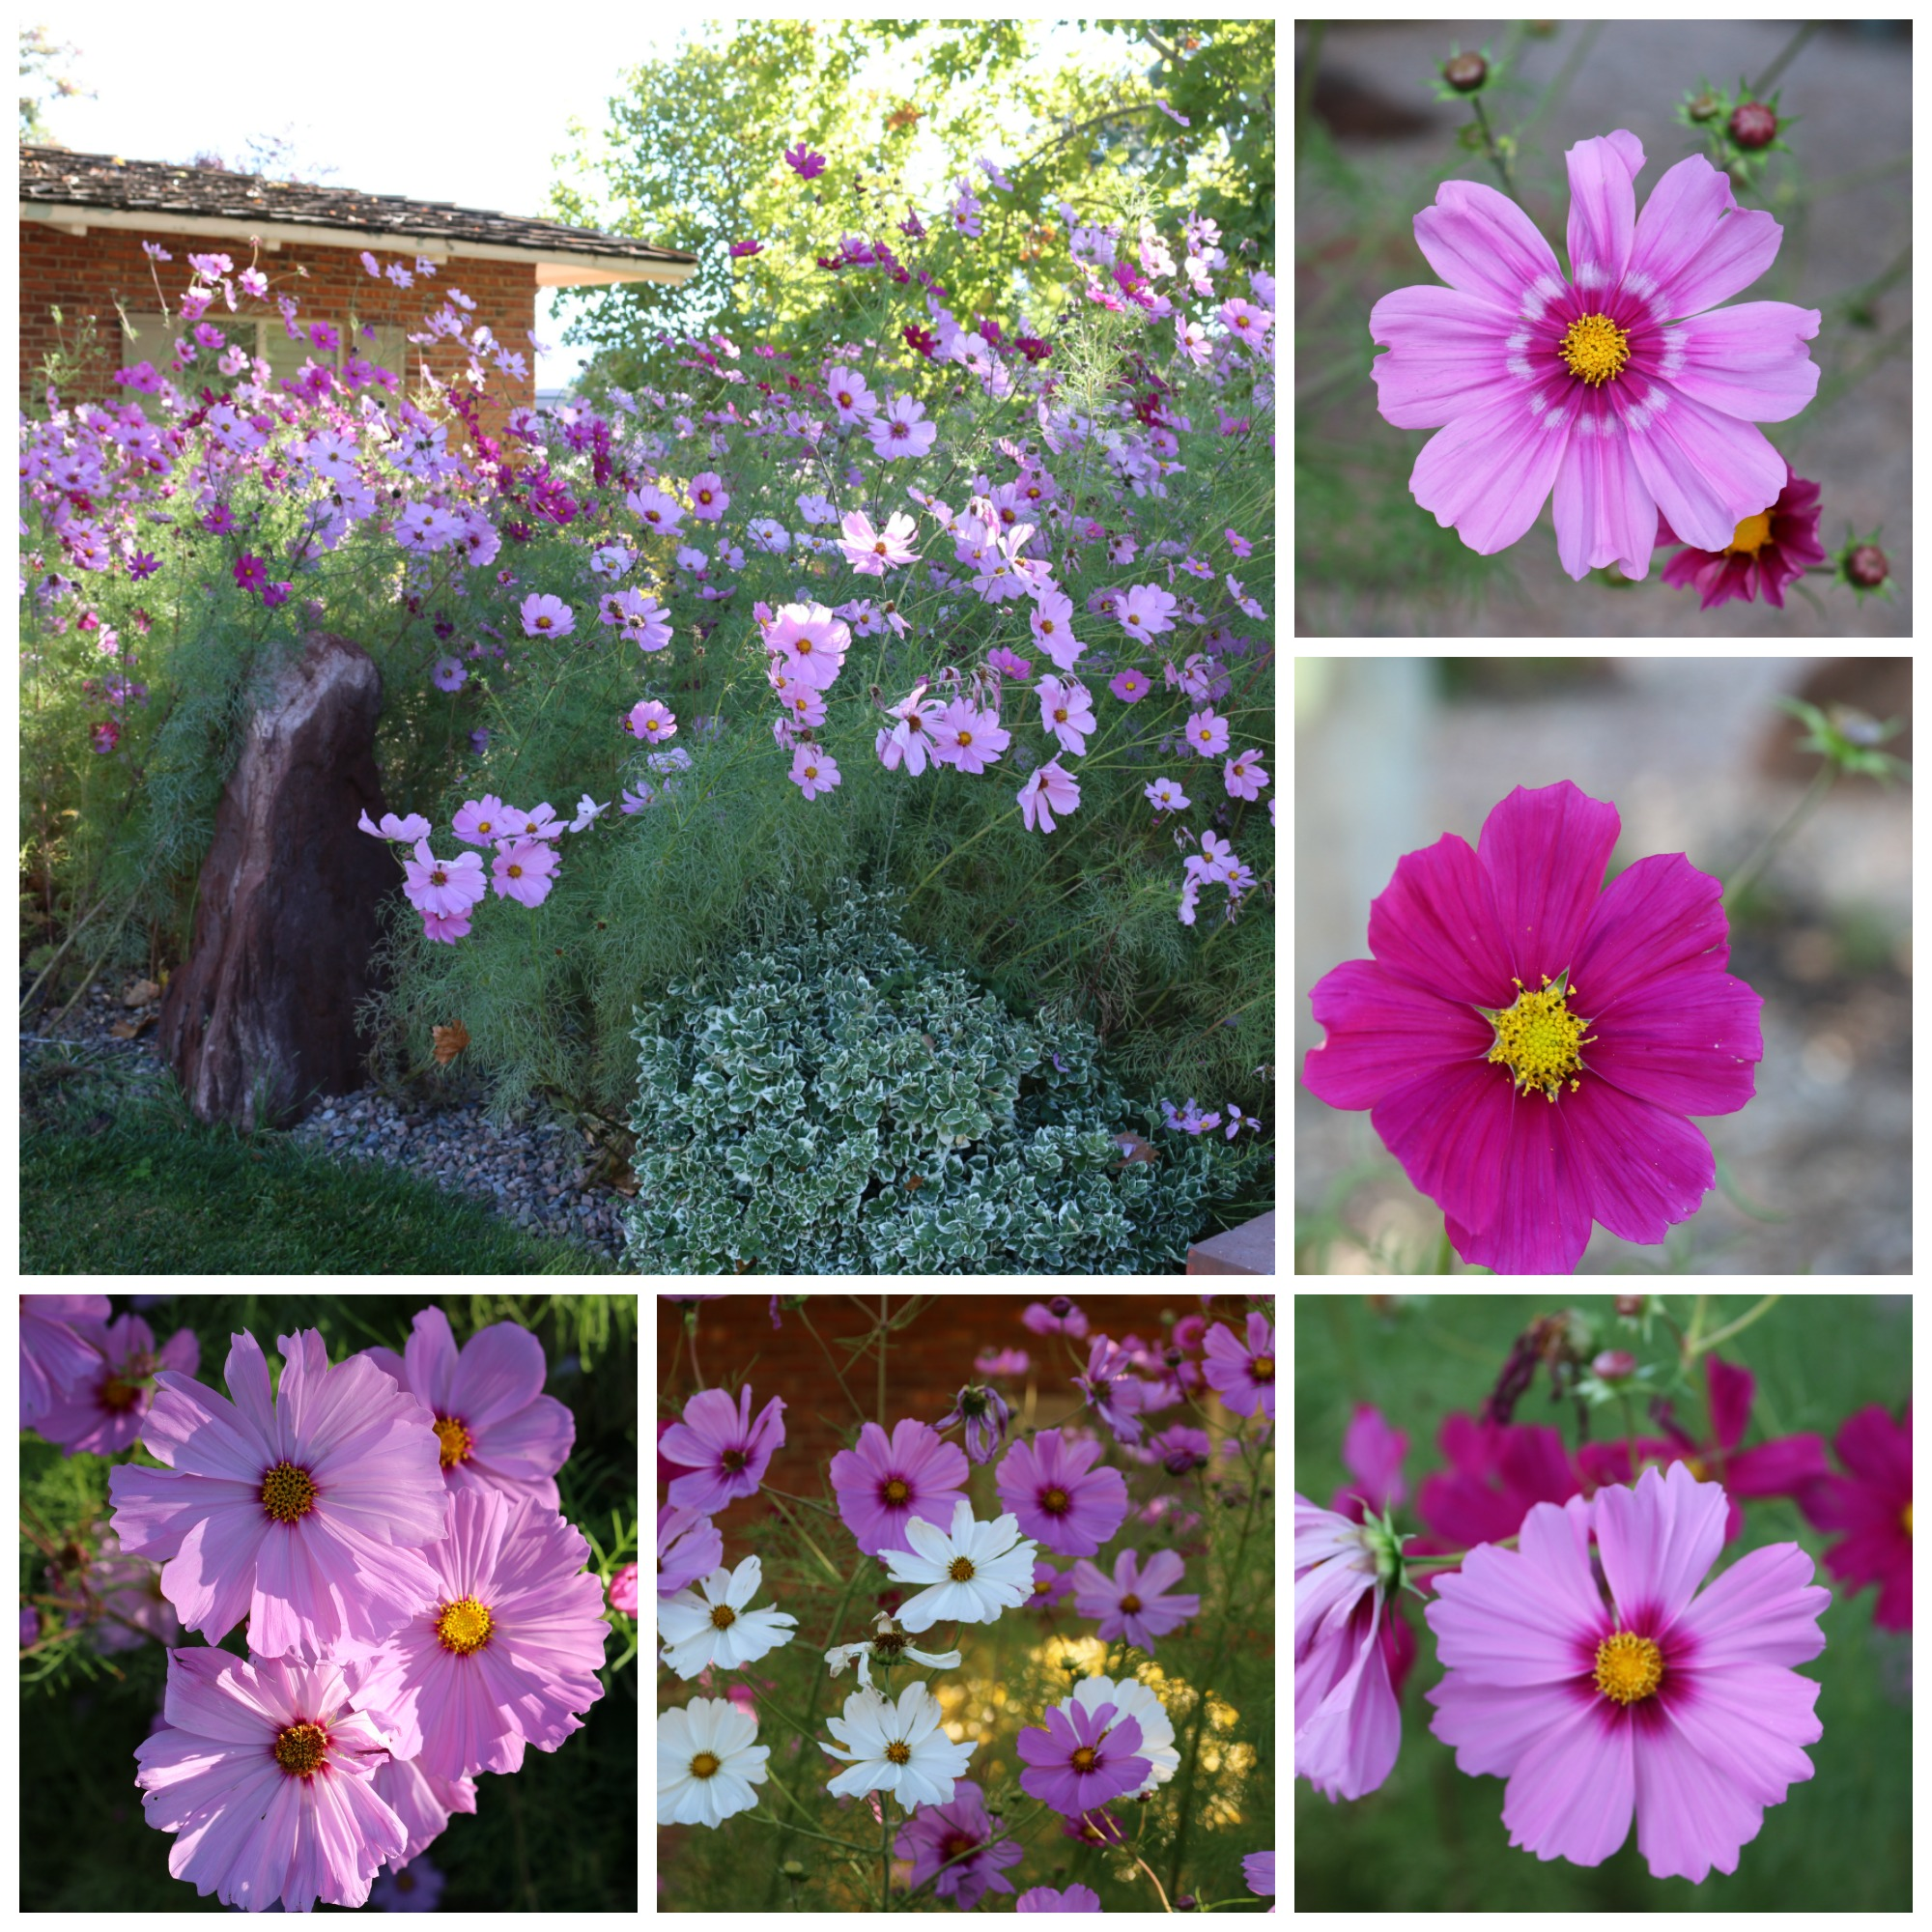 New Mexico Cosmos - nearly 7 feet tall, I have never seen anything like it. All I did was water them. The flowers are enormous. The most beautiful COSMOS I have ever seen in my entire life. Absolutely breathtaking.